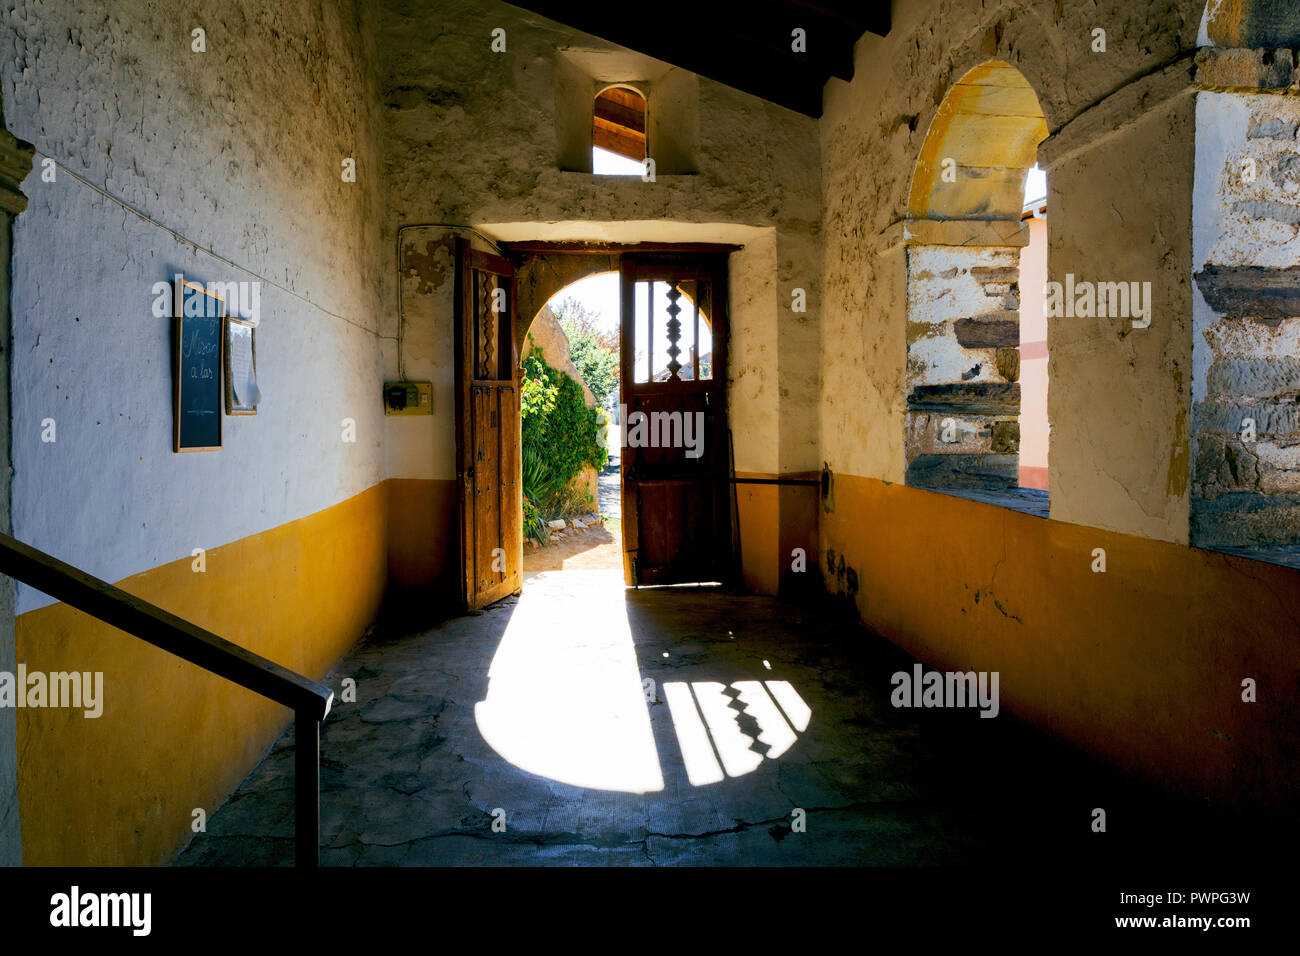 Camino de Santiago (Spain) - Church in El Ganso along the way of St.James, in the spanish meseta - Stock Image